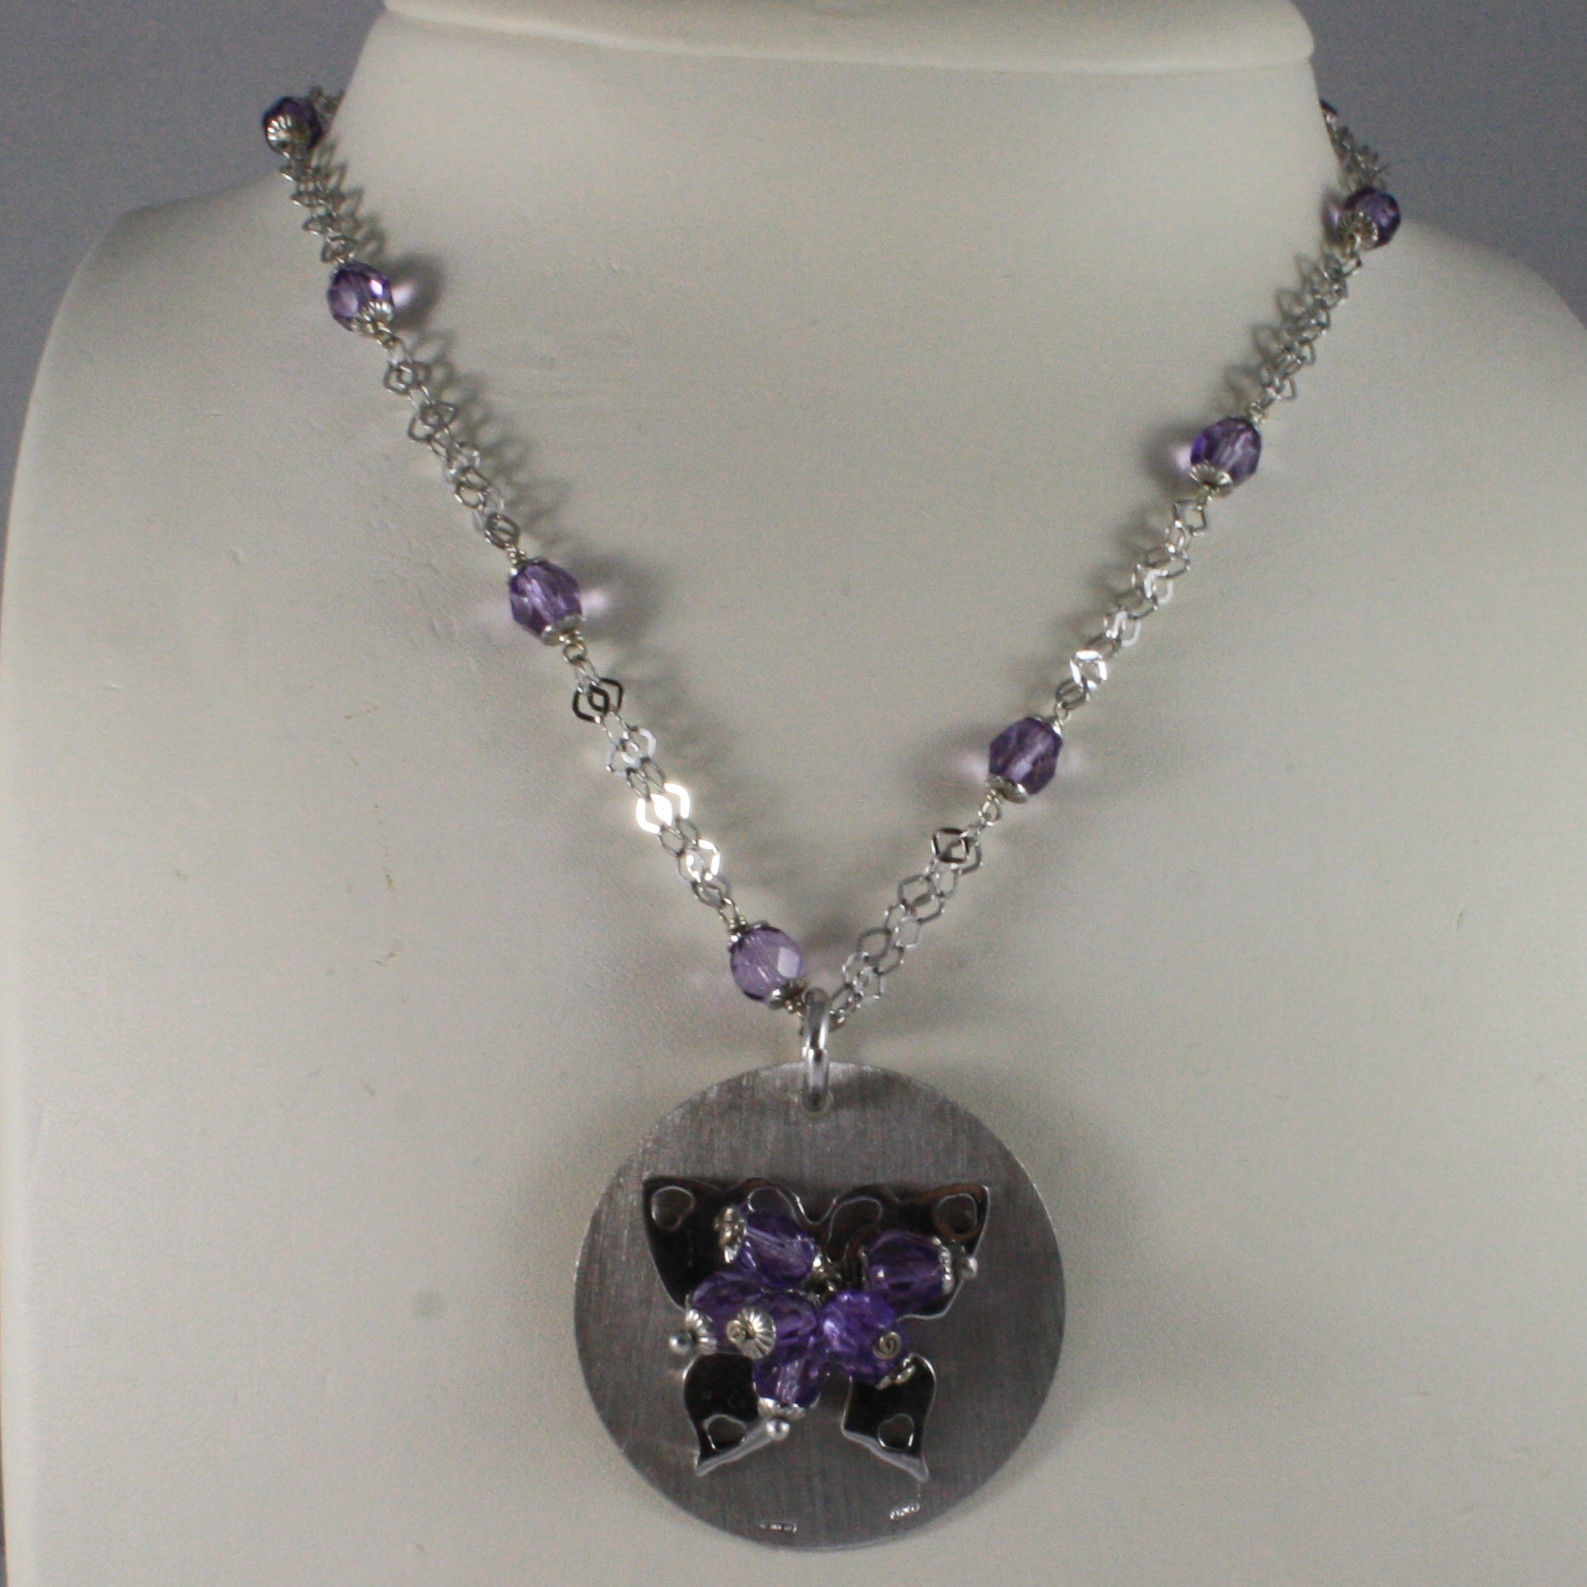 .925 SILVER RHODIUM NECKLACE WITH PURPLE CRYSTALS AND DISC WITH BUTTERFLY